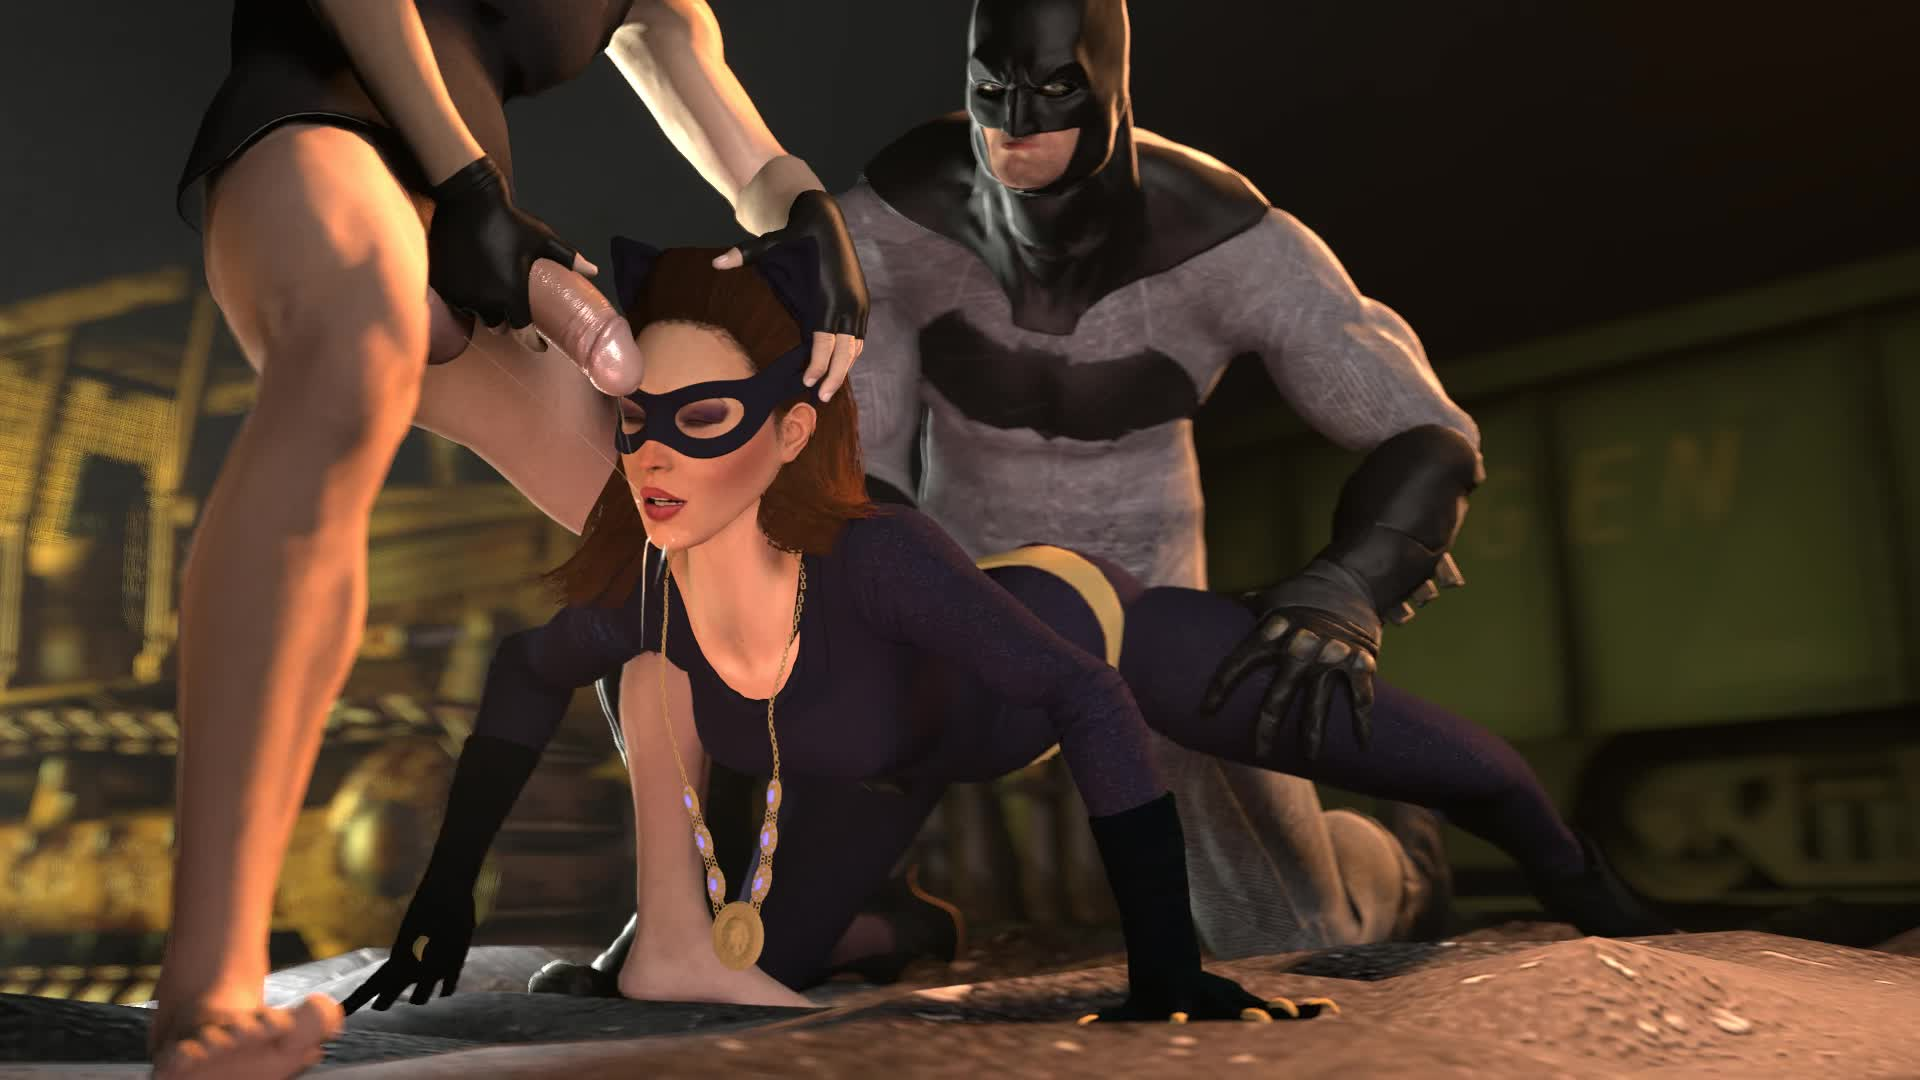 Have sex with catwoman vs refuse